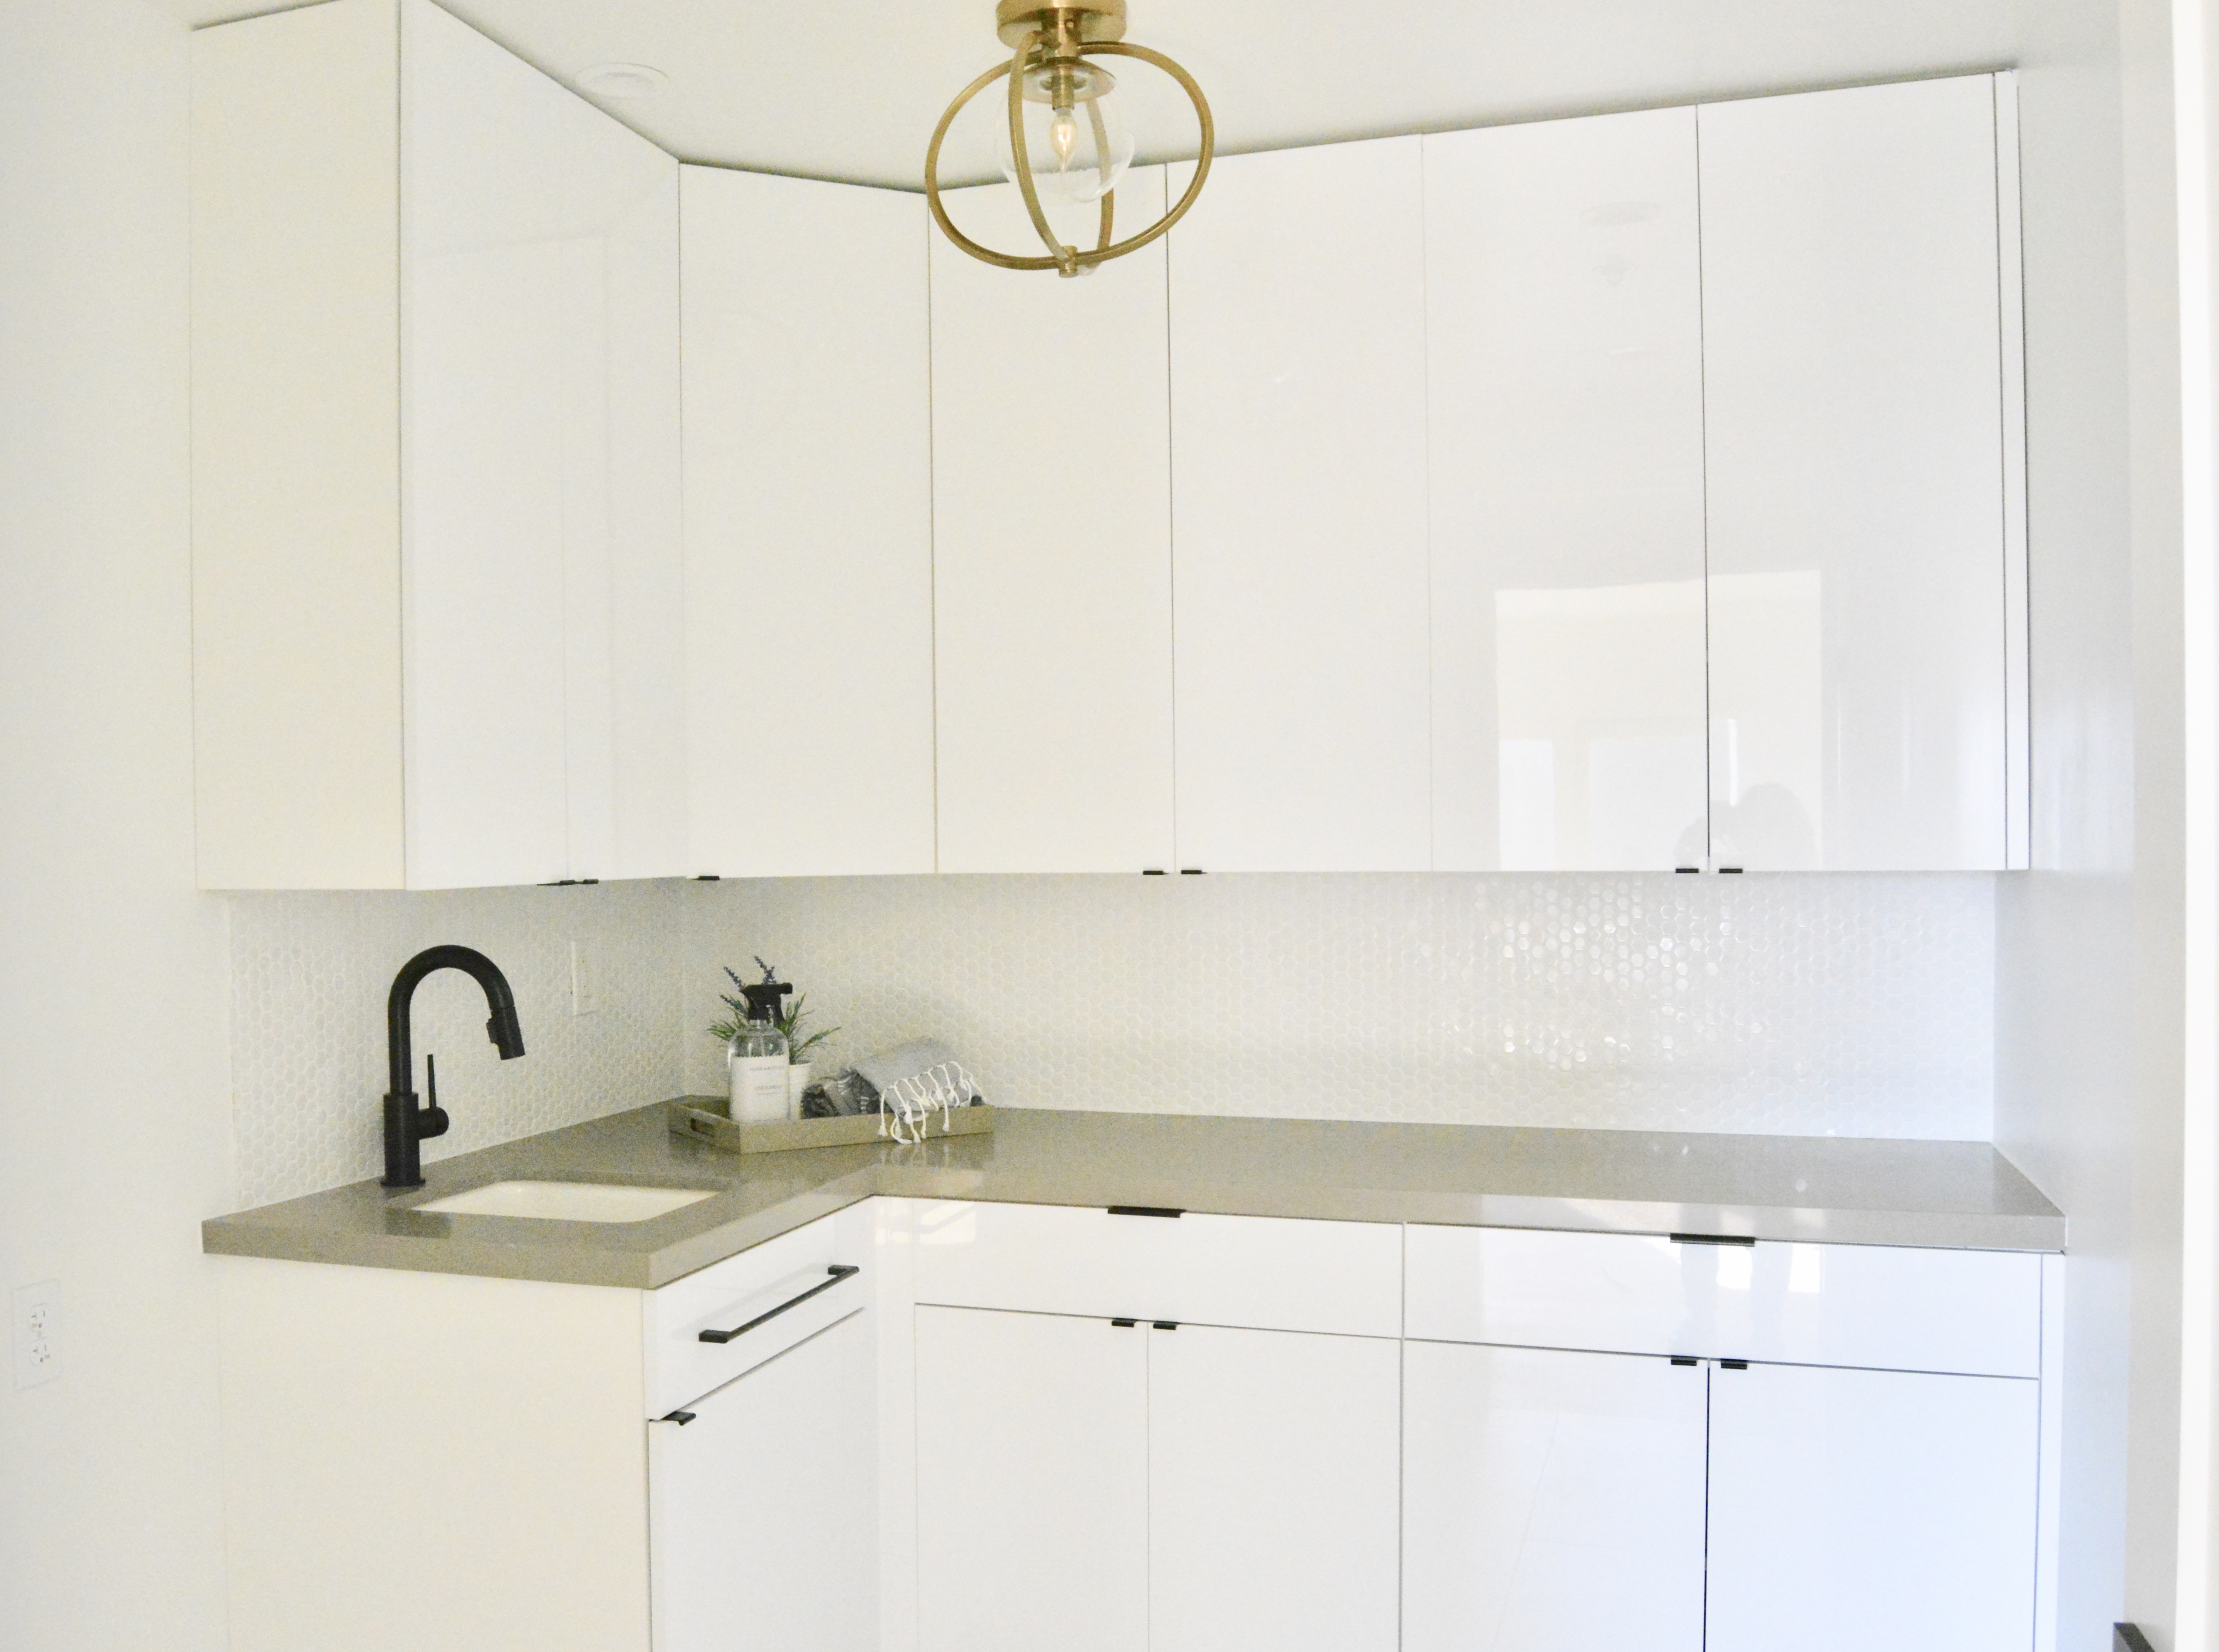 all white laundry room black and brass fixtures faucet and hardware gray quartz countertops fish and arrow interiors janna parr